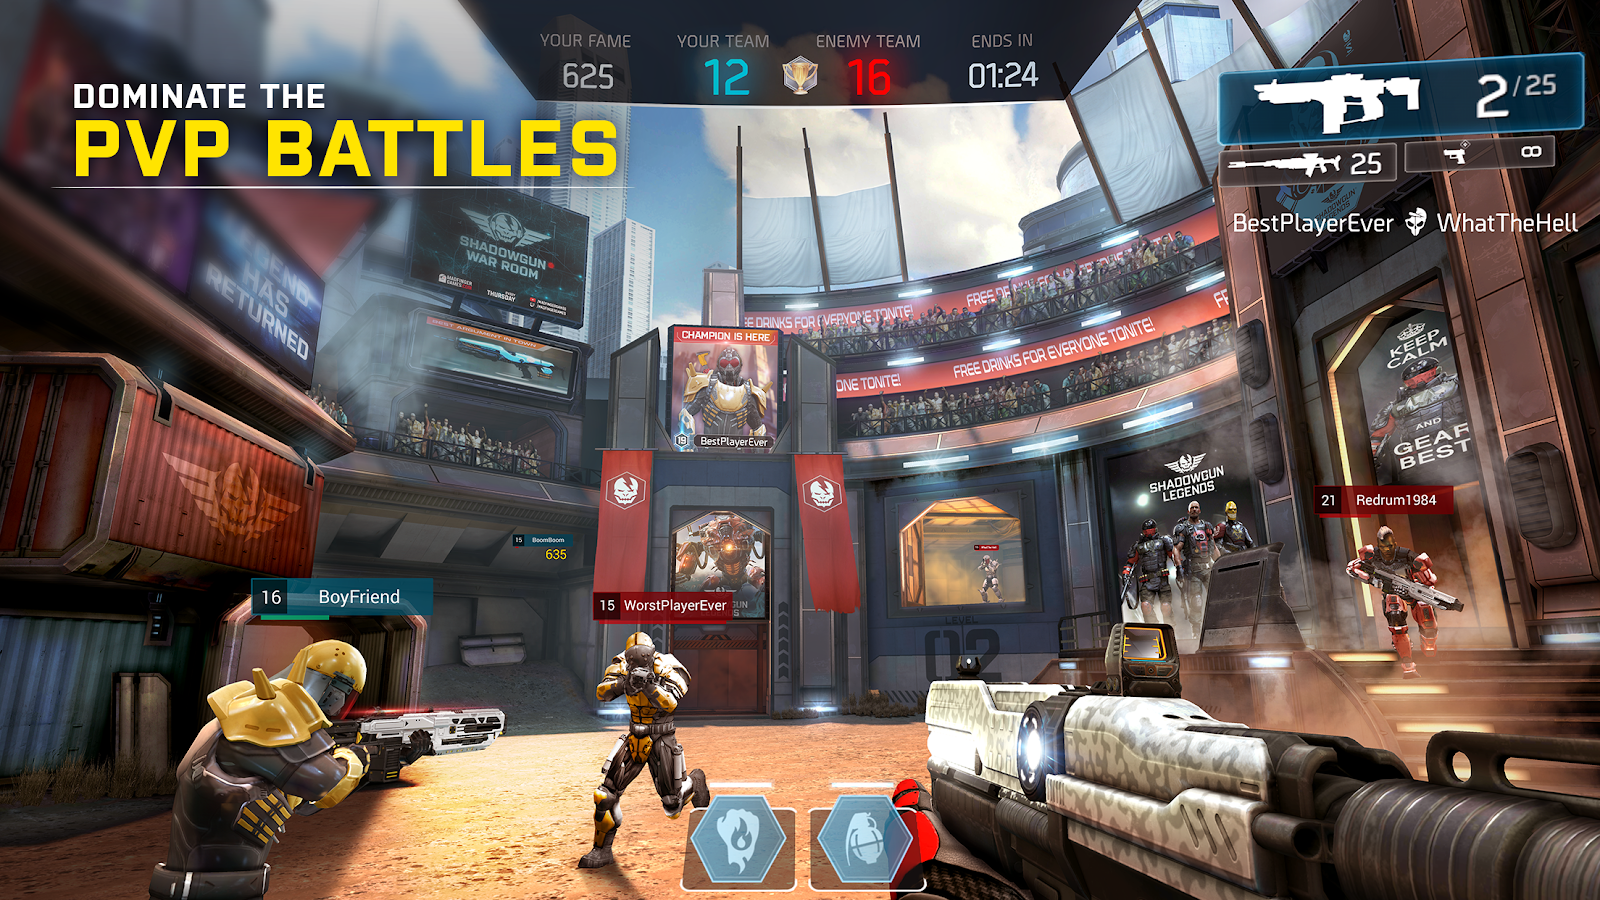 shadowgun legends for pc online